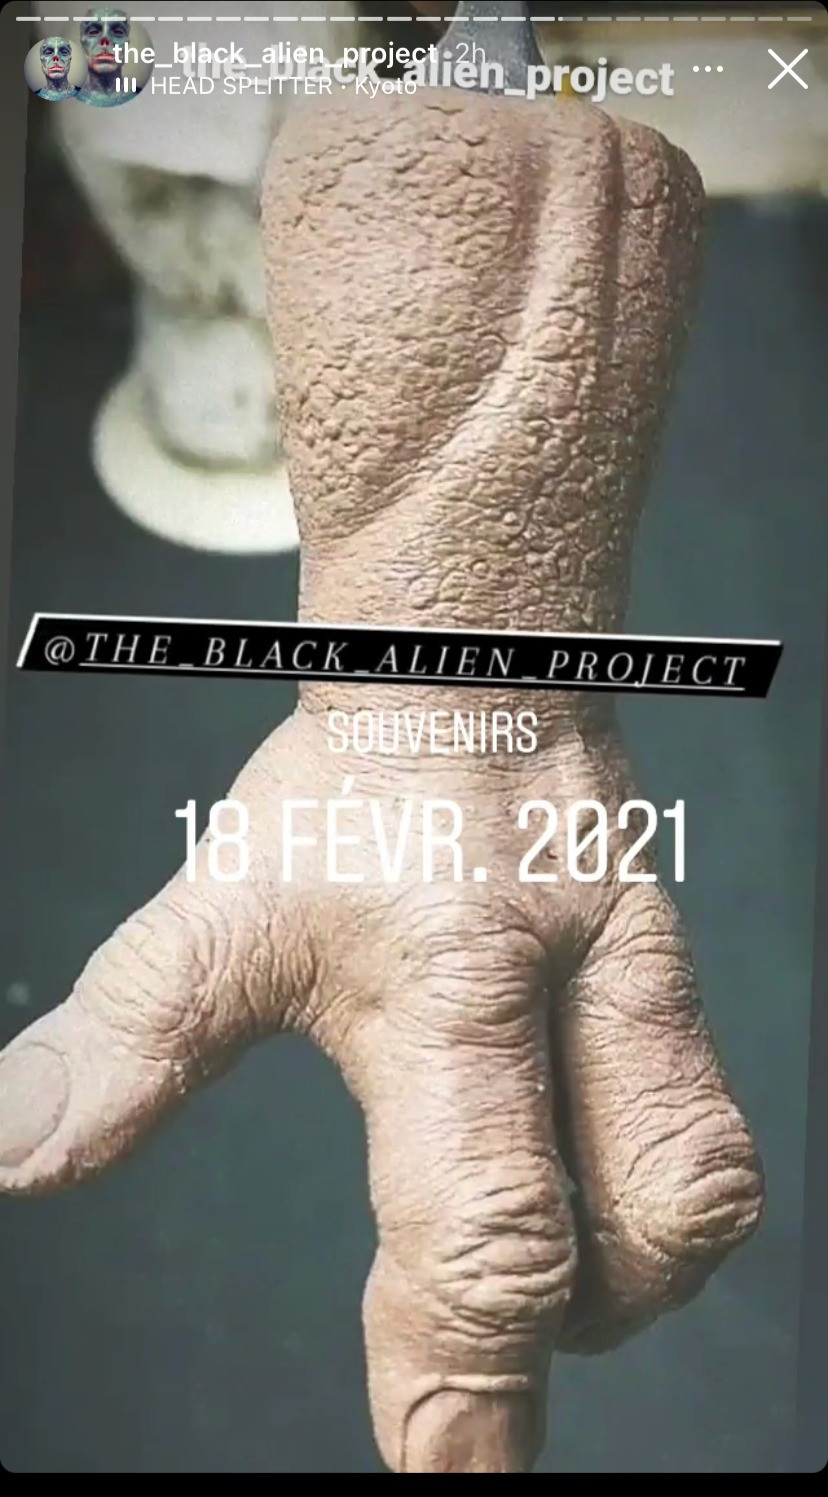 The Black Alien Project has been dropping hints for months that he will cut his fingers off